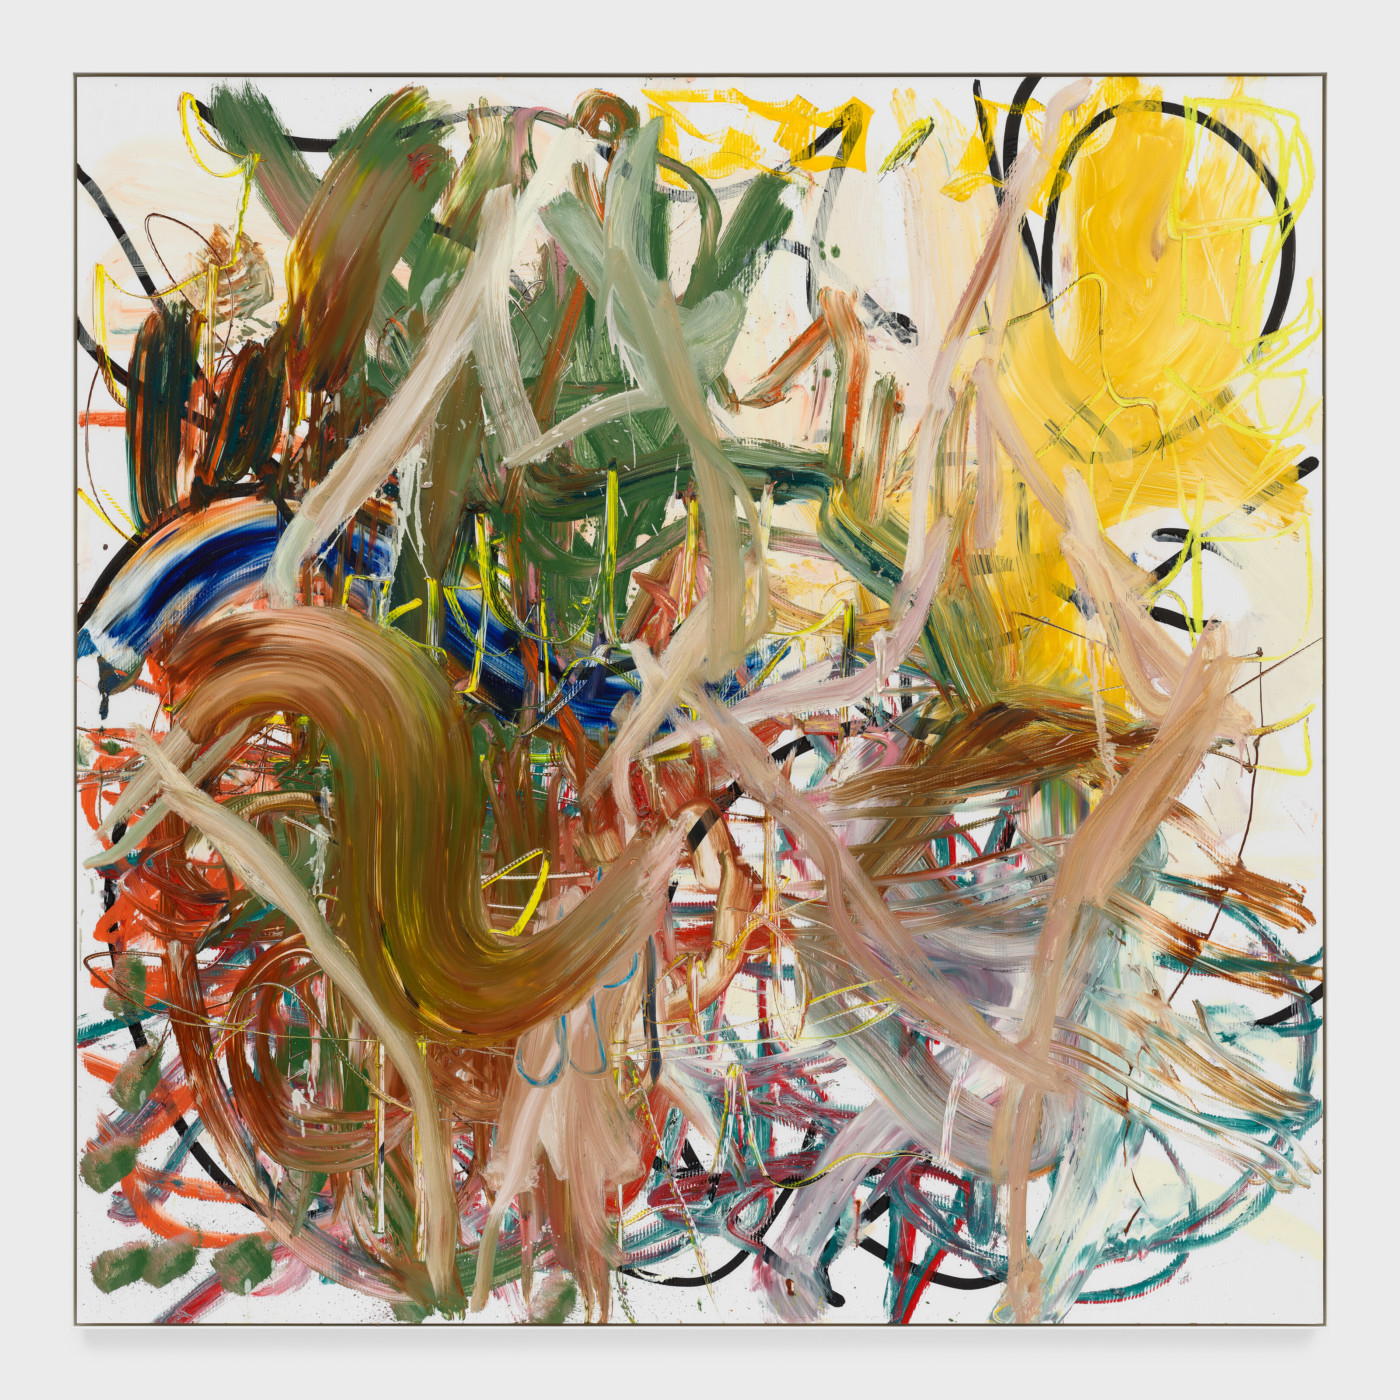 AARON  GARBER-MAIKOVSKA  YELLOW LETTER,  2020 Oil on fluted poly 205 x 205 x 5 cm / 80 3/4 x 80 3/4 x 2 in - High Art Gallery Paris